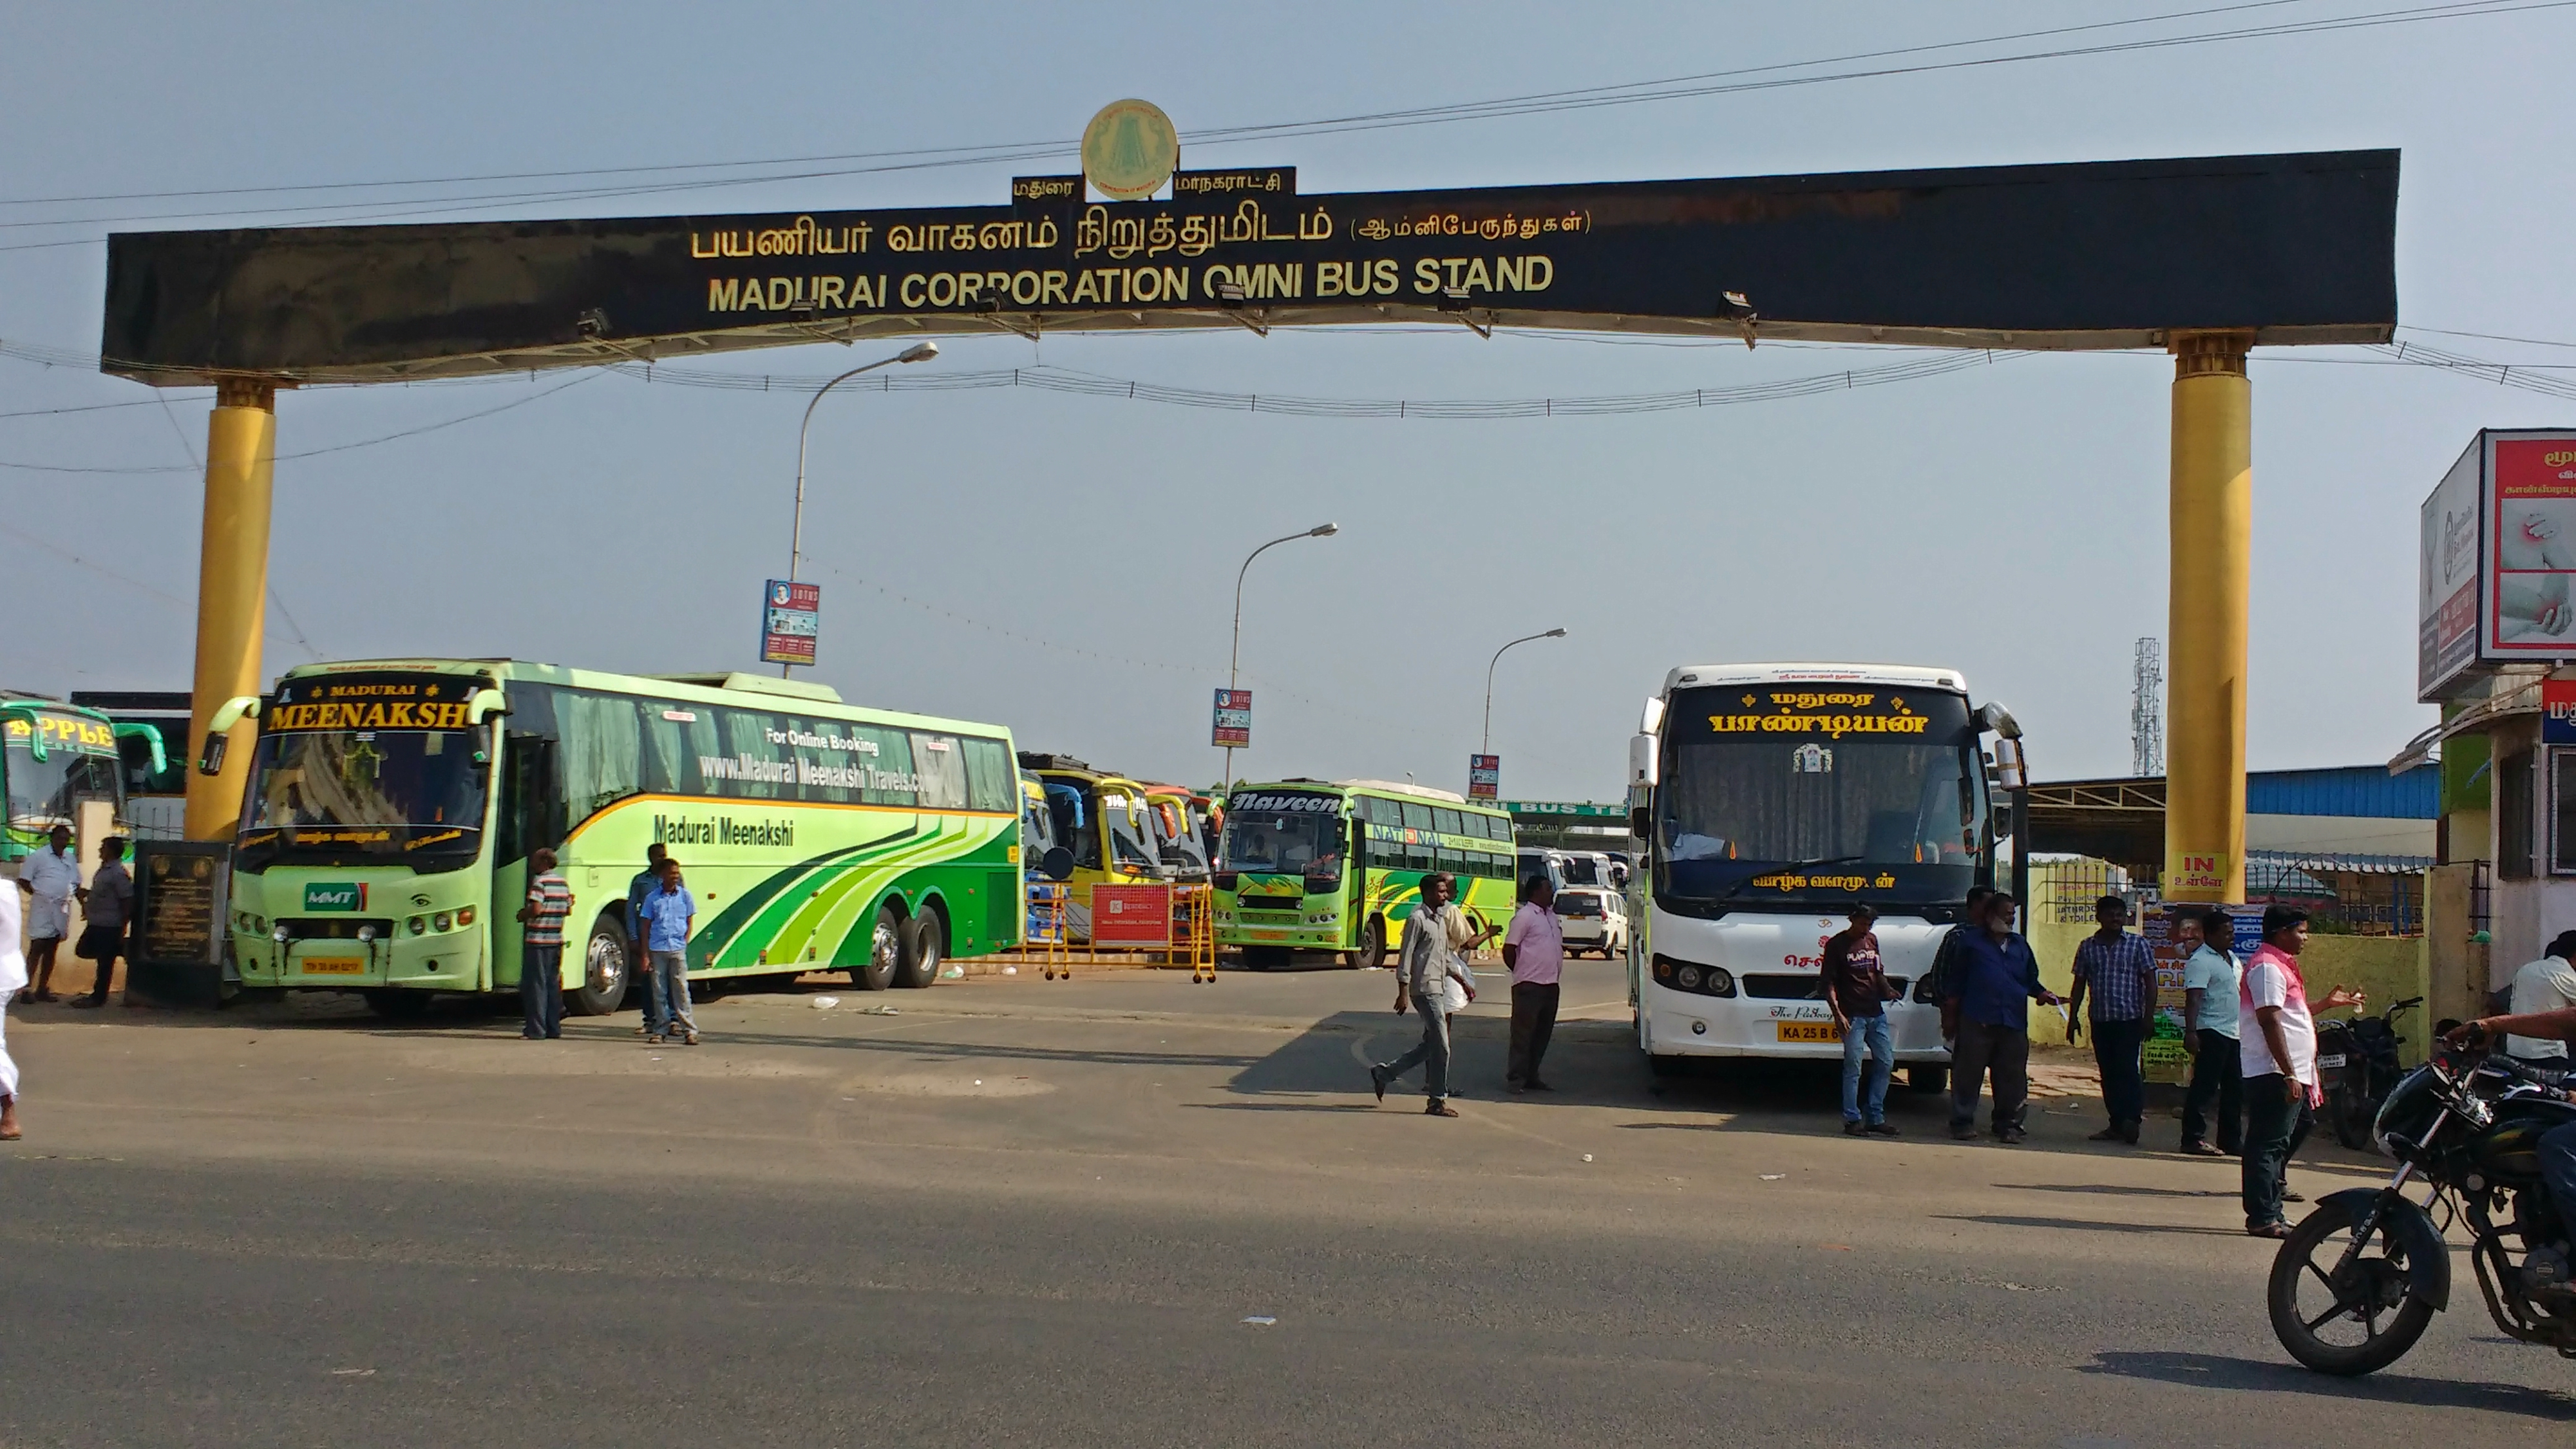 Omni bus stand in bangalore dating 7